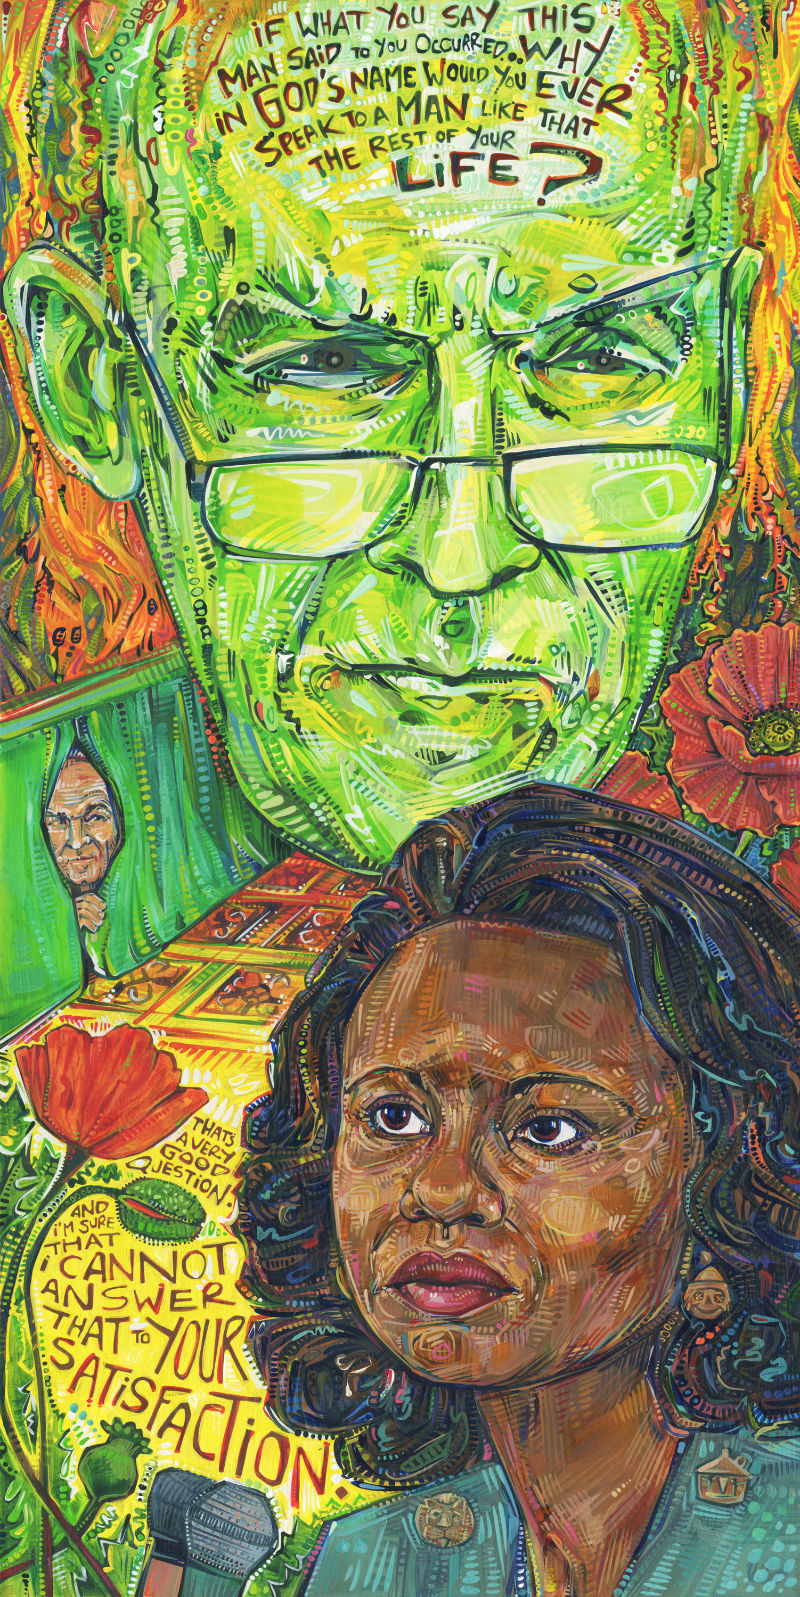 Anita Hill as Dorothy from the Wizard of Oz confronting Senator Alan Simpson painting from 2017